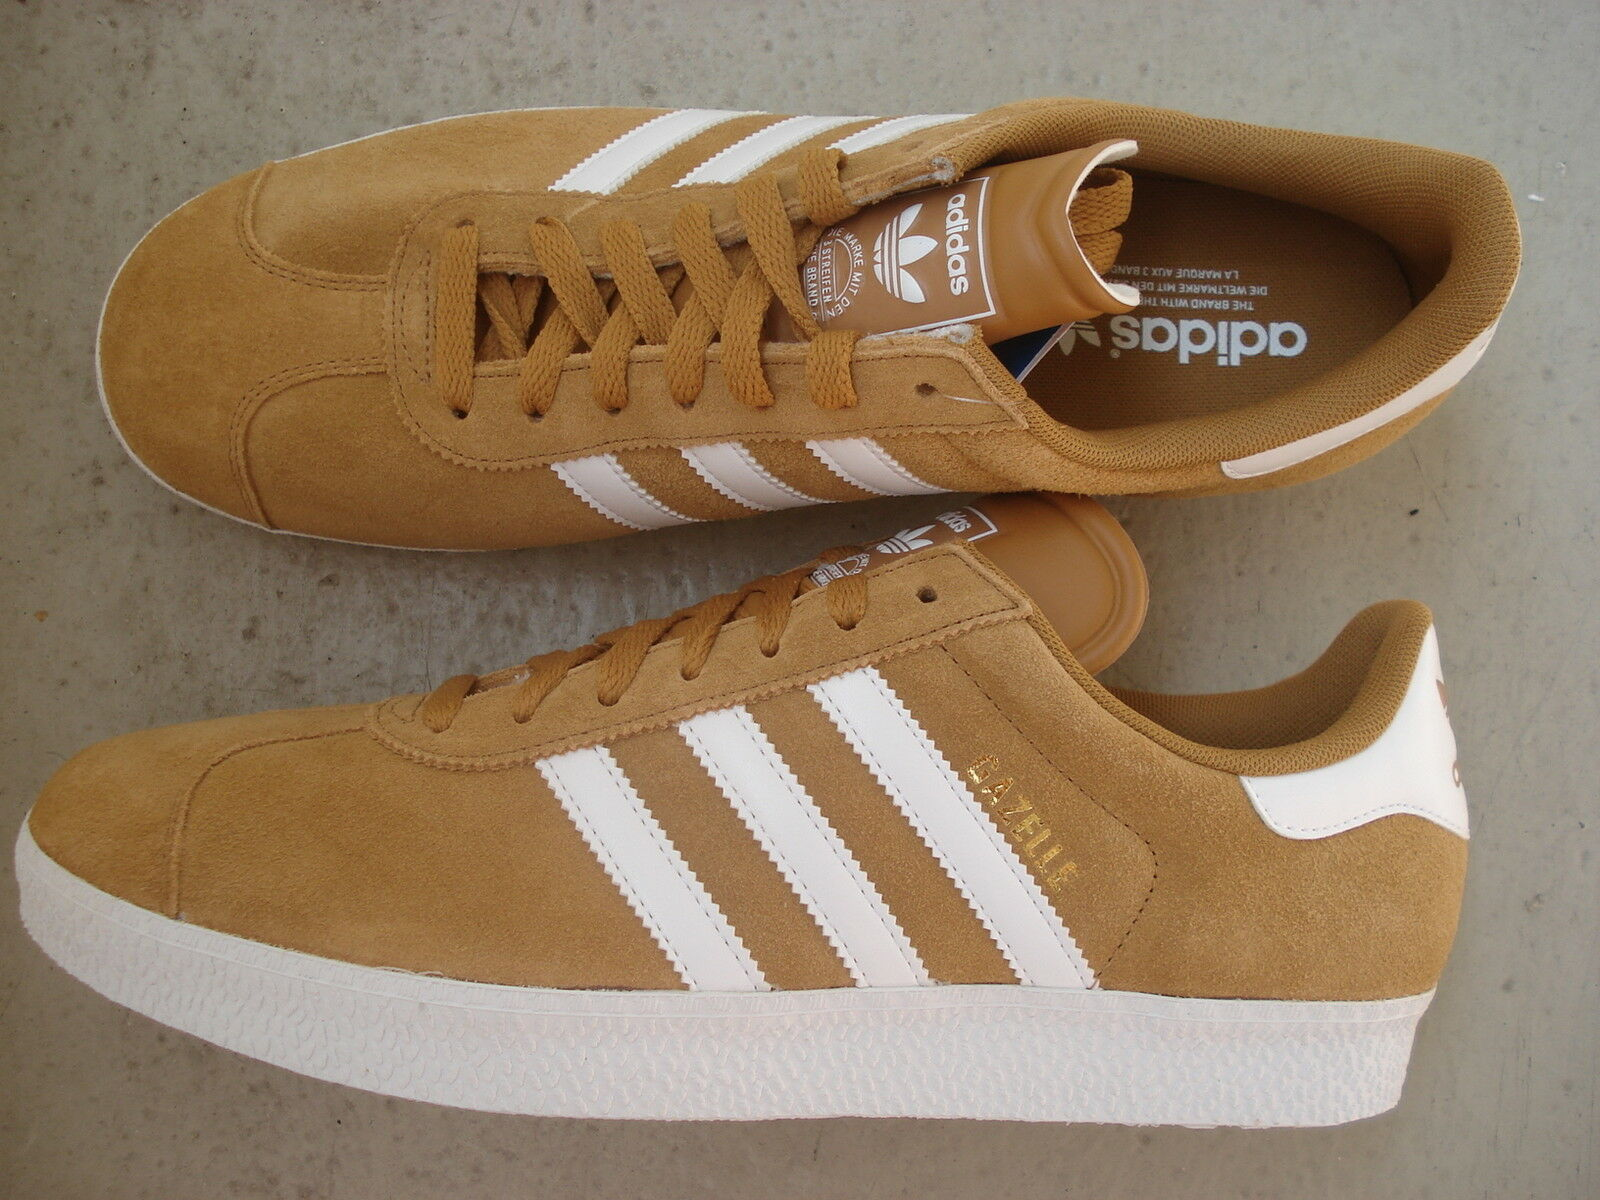 Adidas Gazelle II 45 1/3 Originals Wheat/Runwht/Melgol